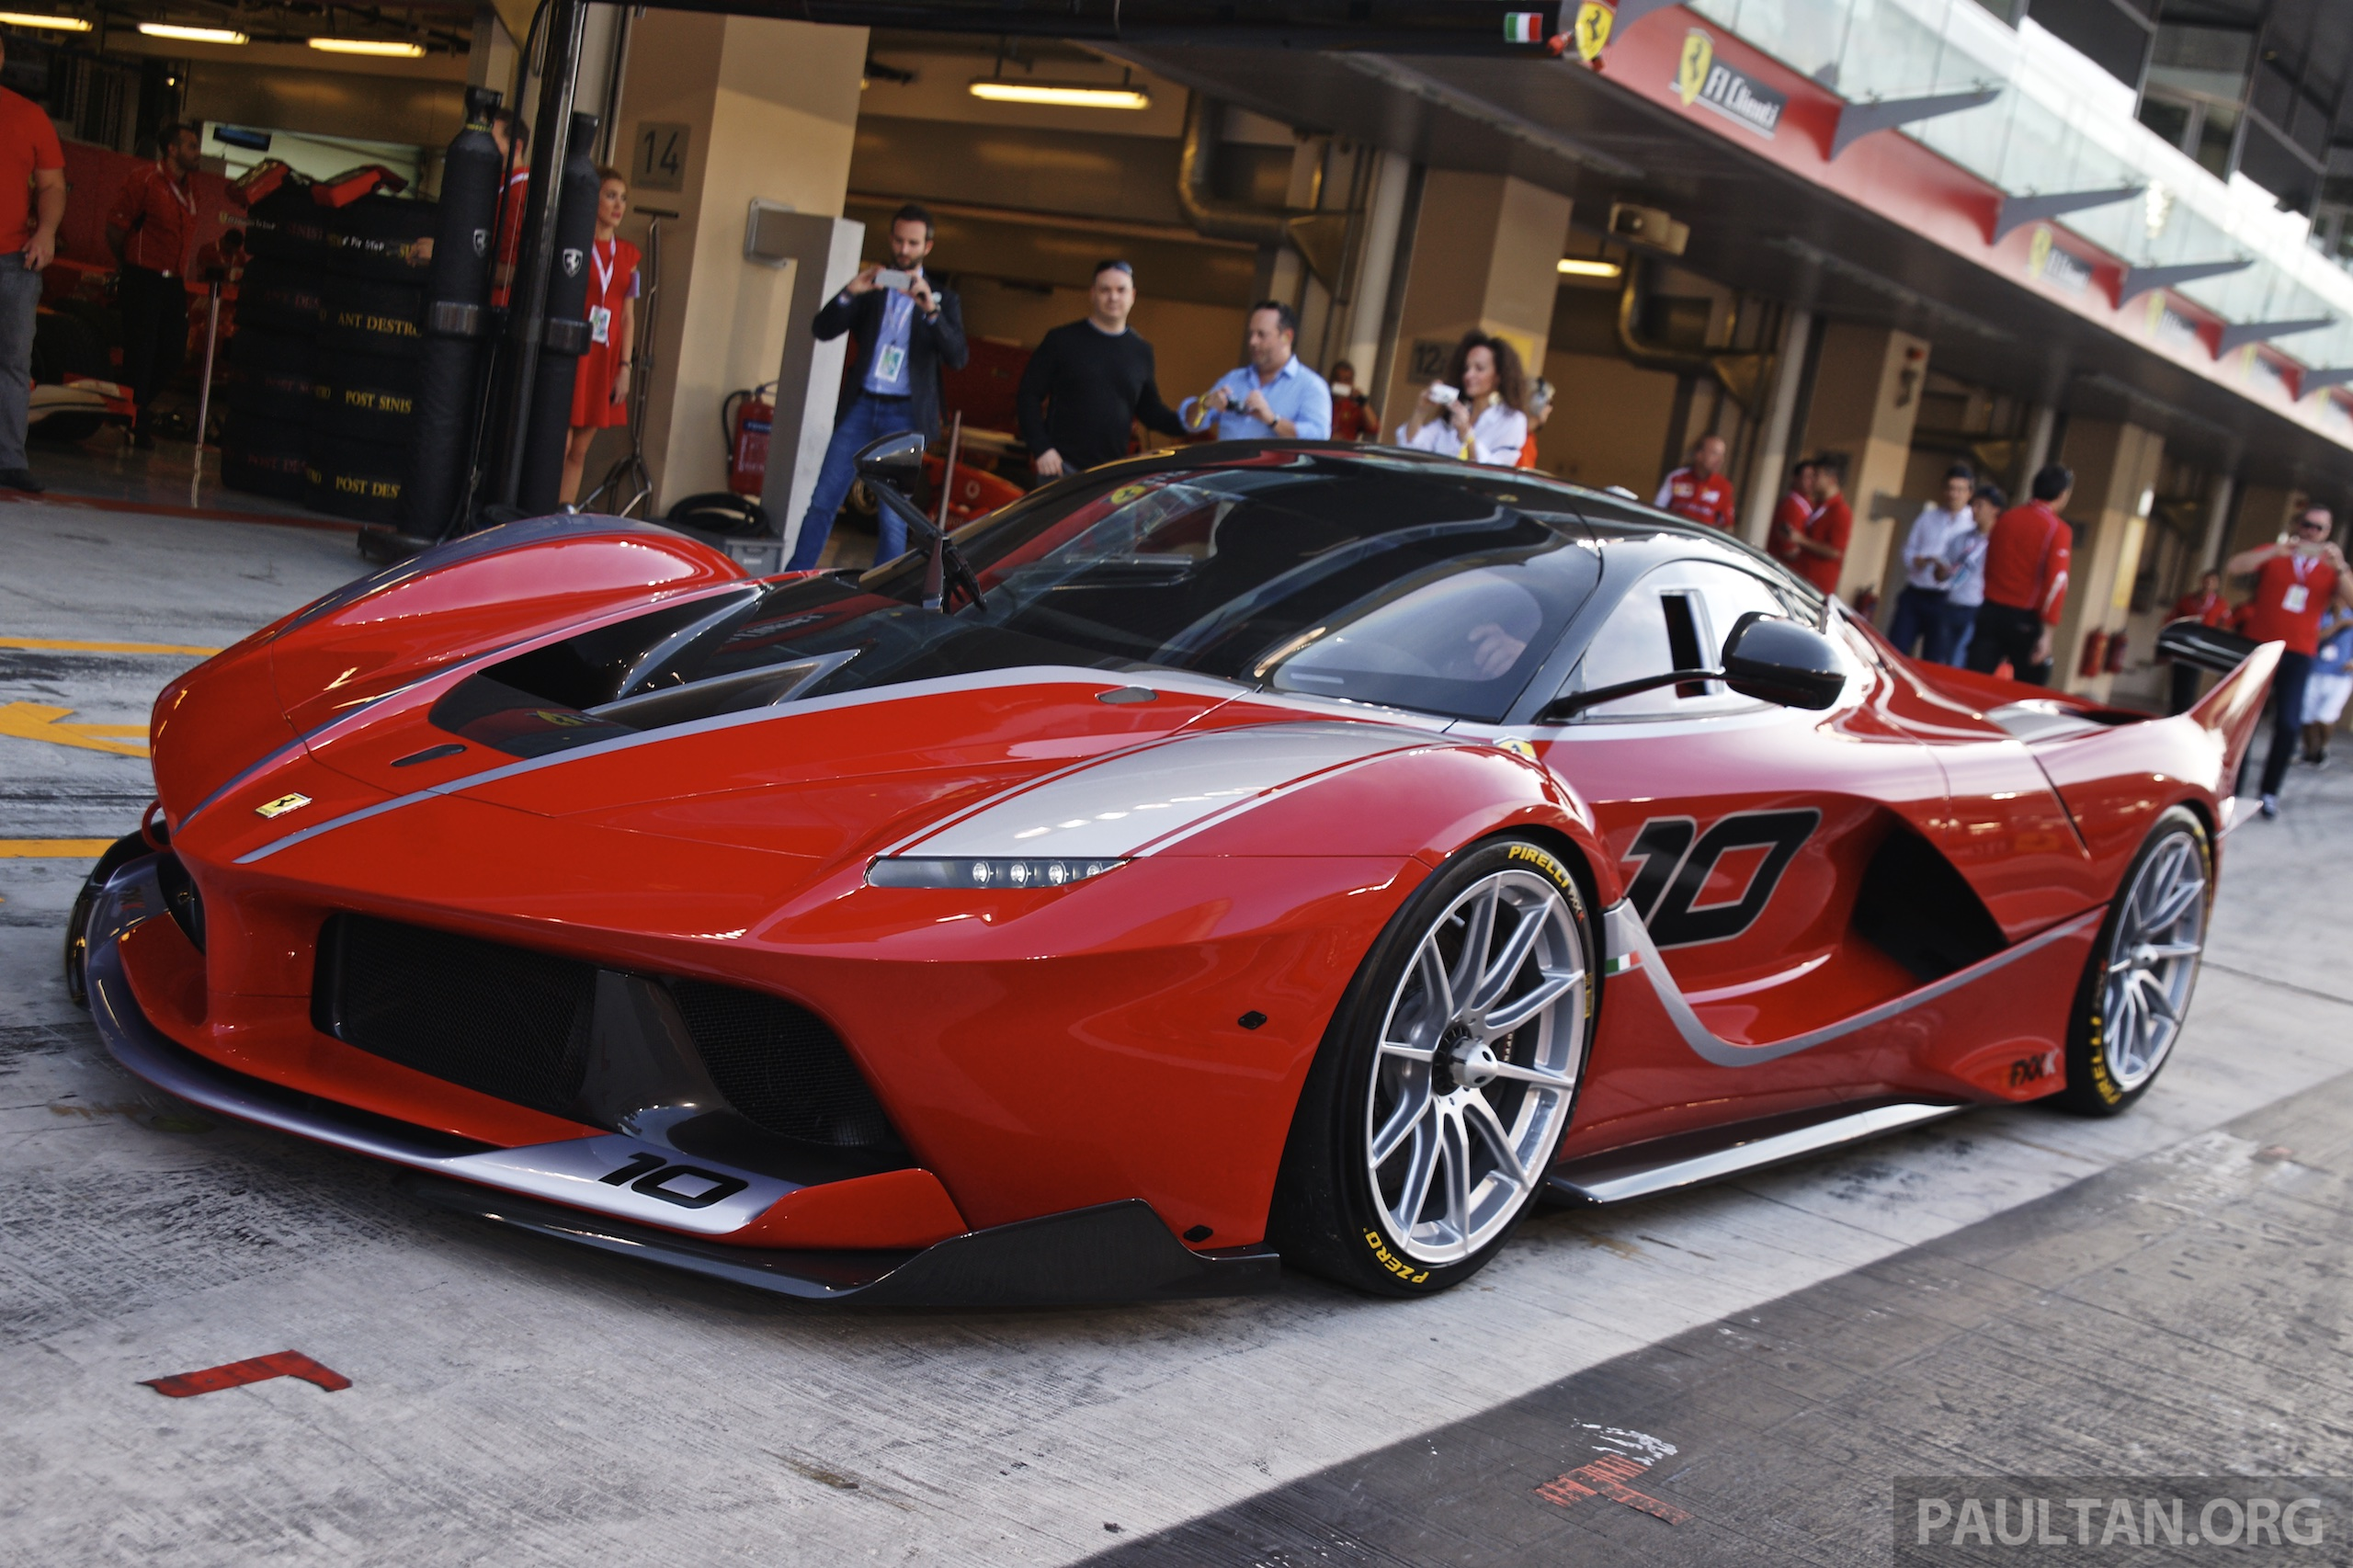 Gallery 1 050 Hp Ferrari Fxx K At Yas Marina Circuit